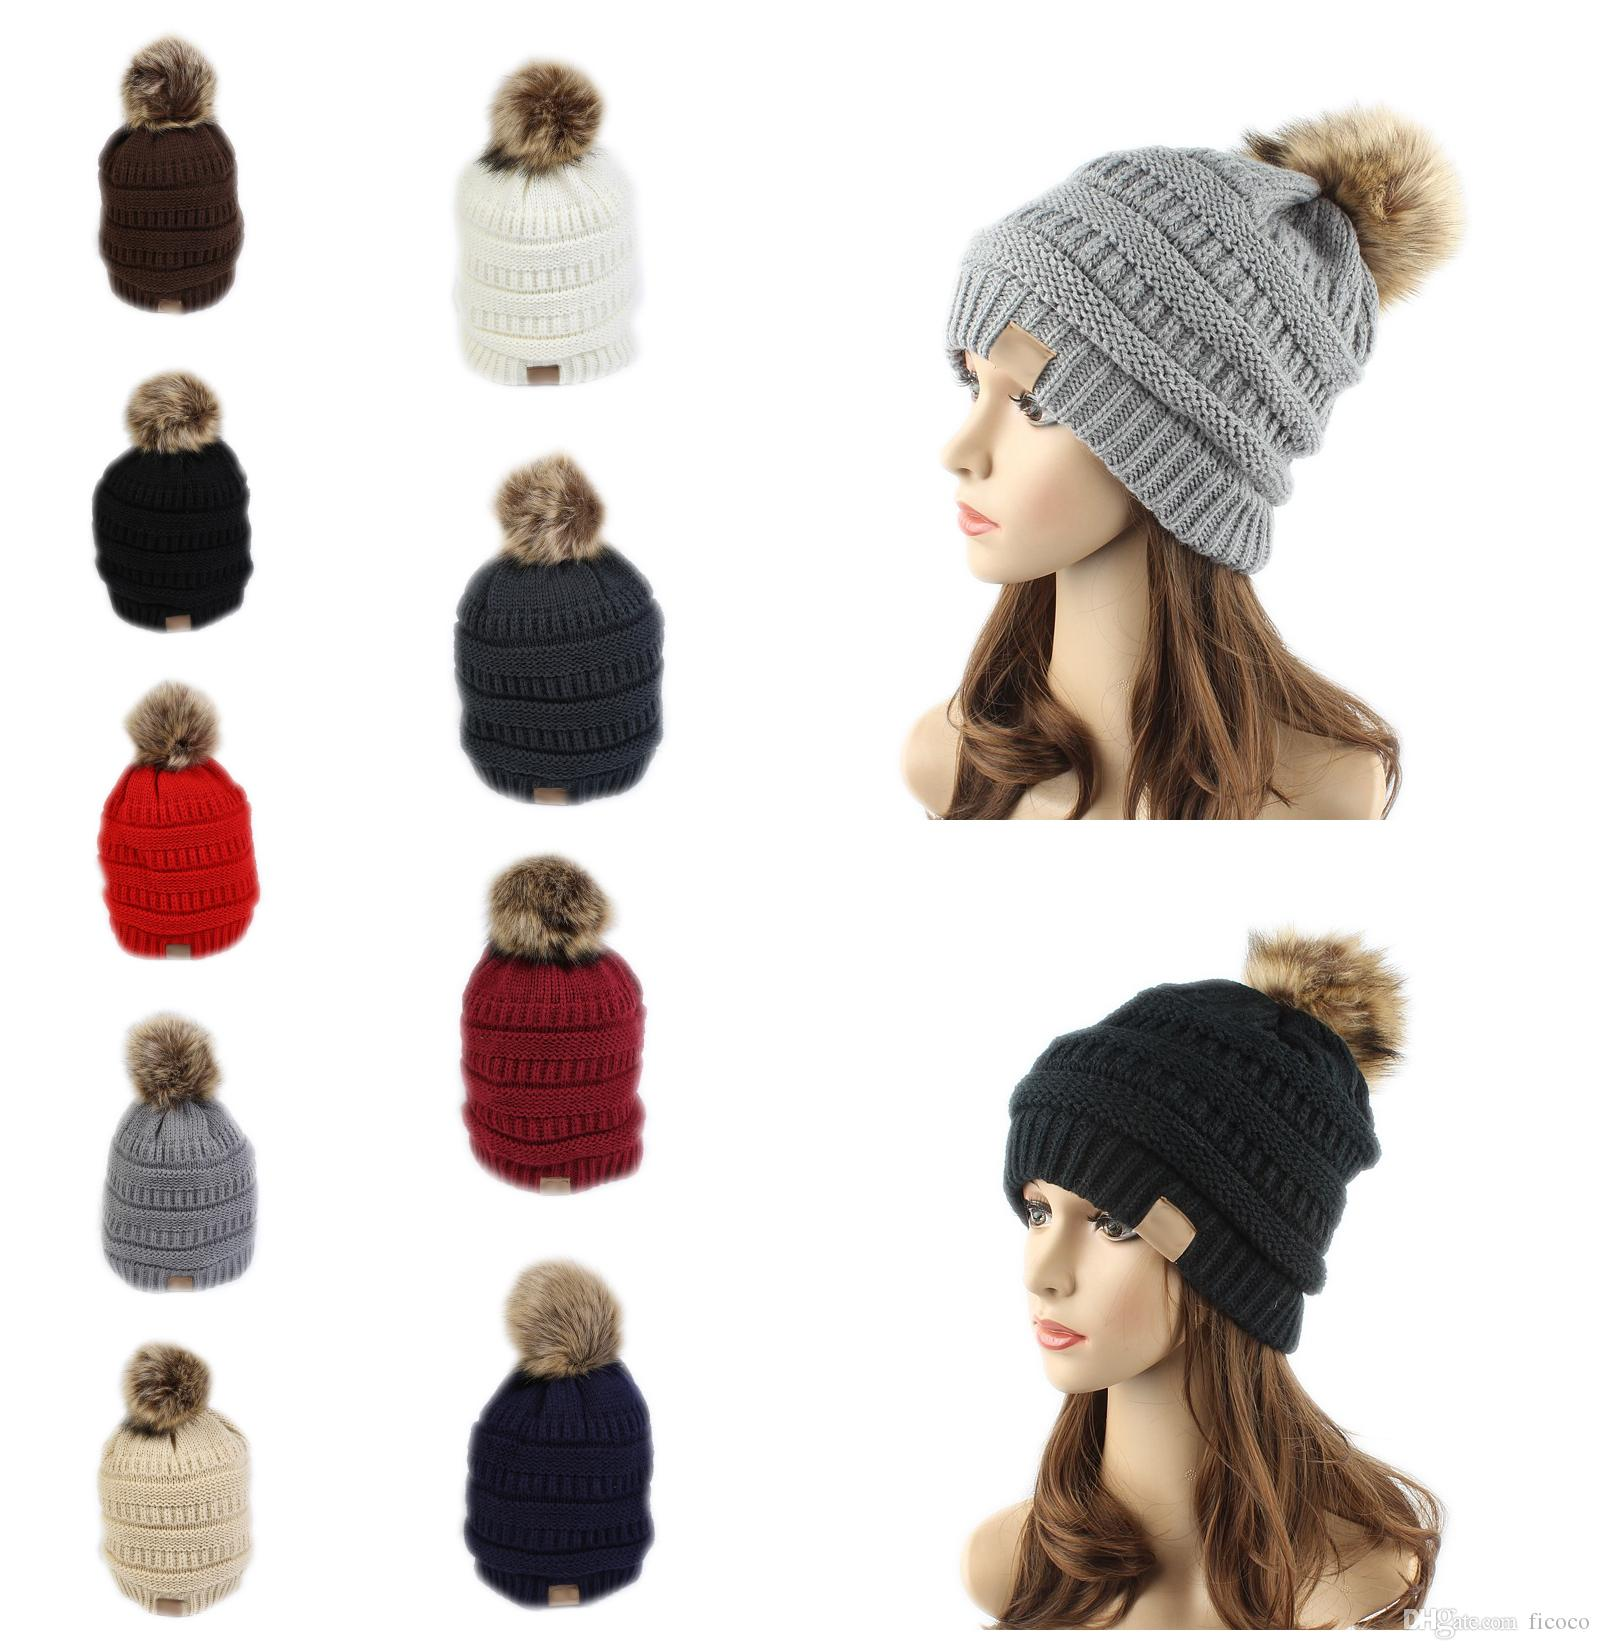 41301a7586c Wholesale C Icon Hats Knitted Woolen Beanies Women Men Bucket Hats Cable  Slouchy Skull Pom Pom Caps Beanies Caps Fitted Hats Snapbacks Funny Hats  Baseball ...